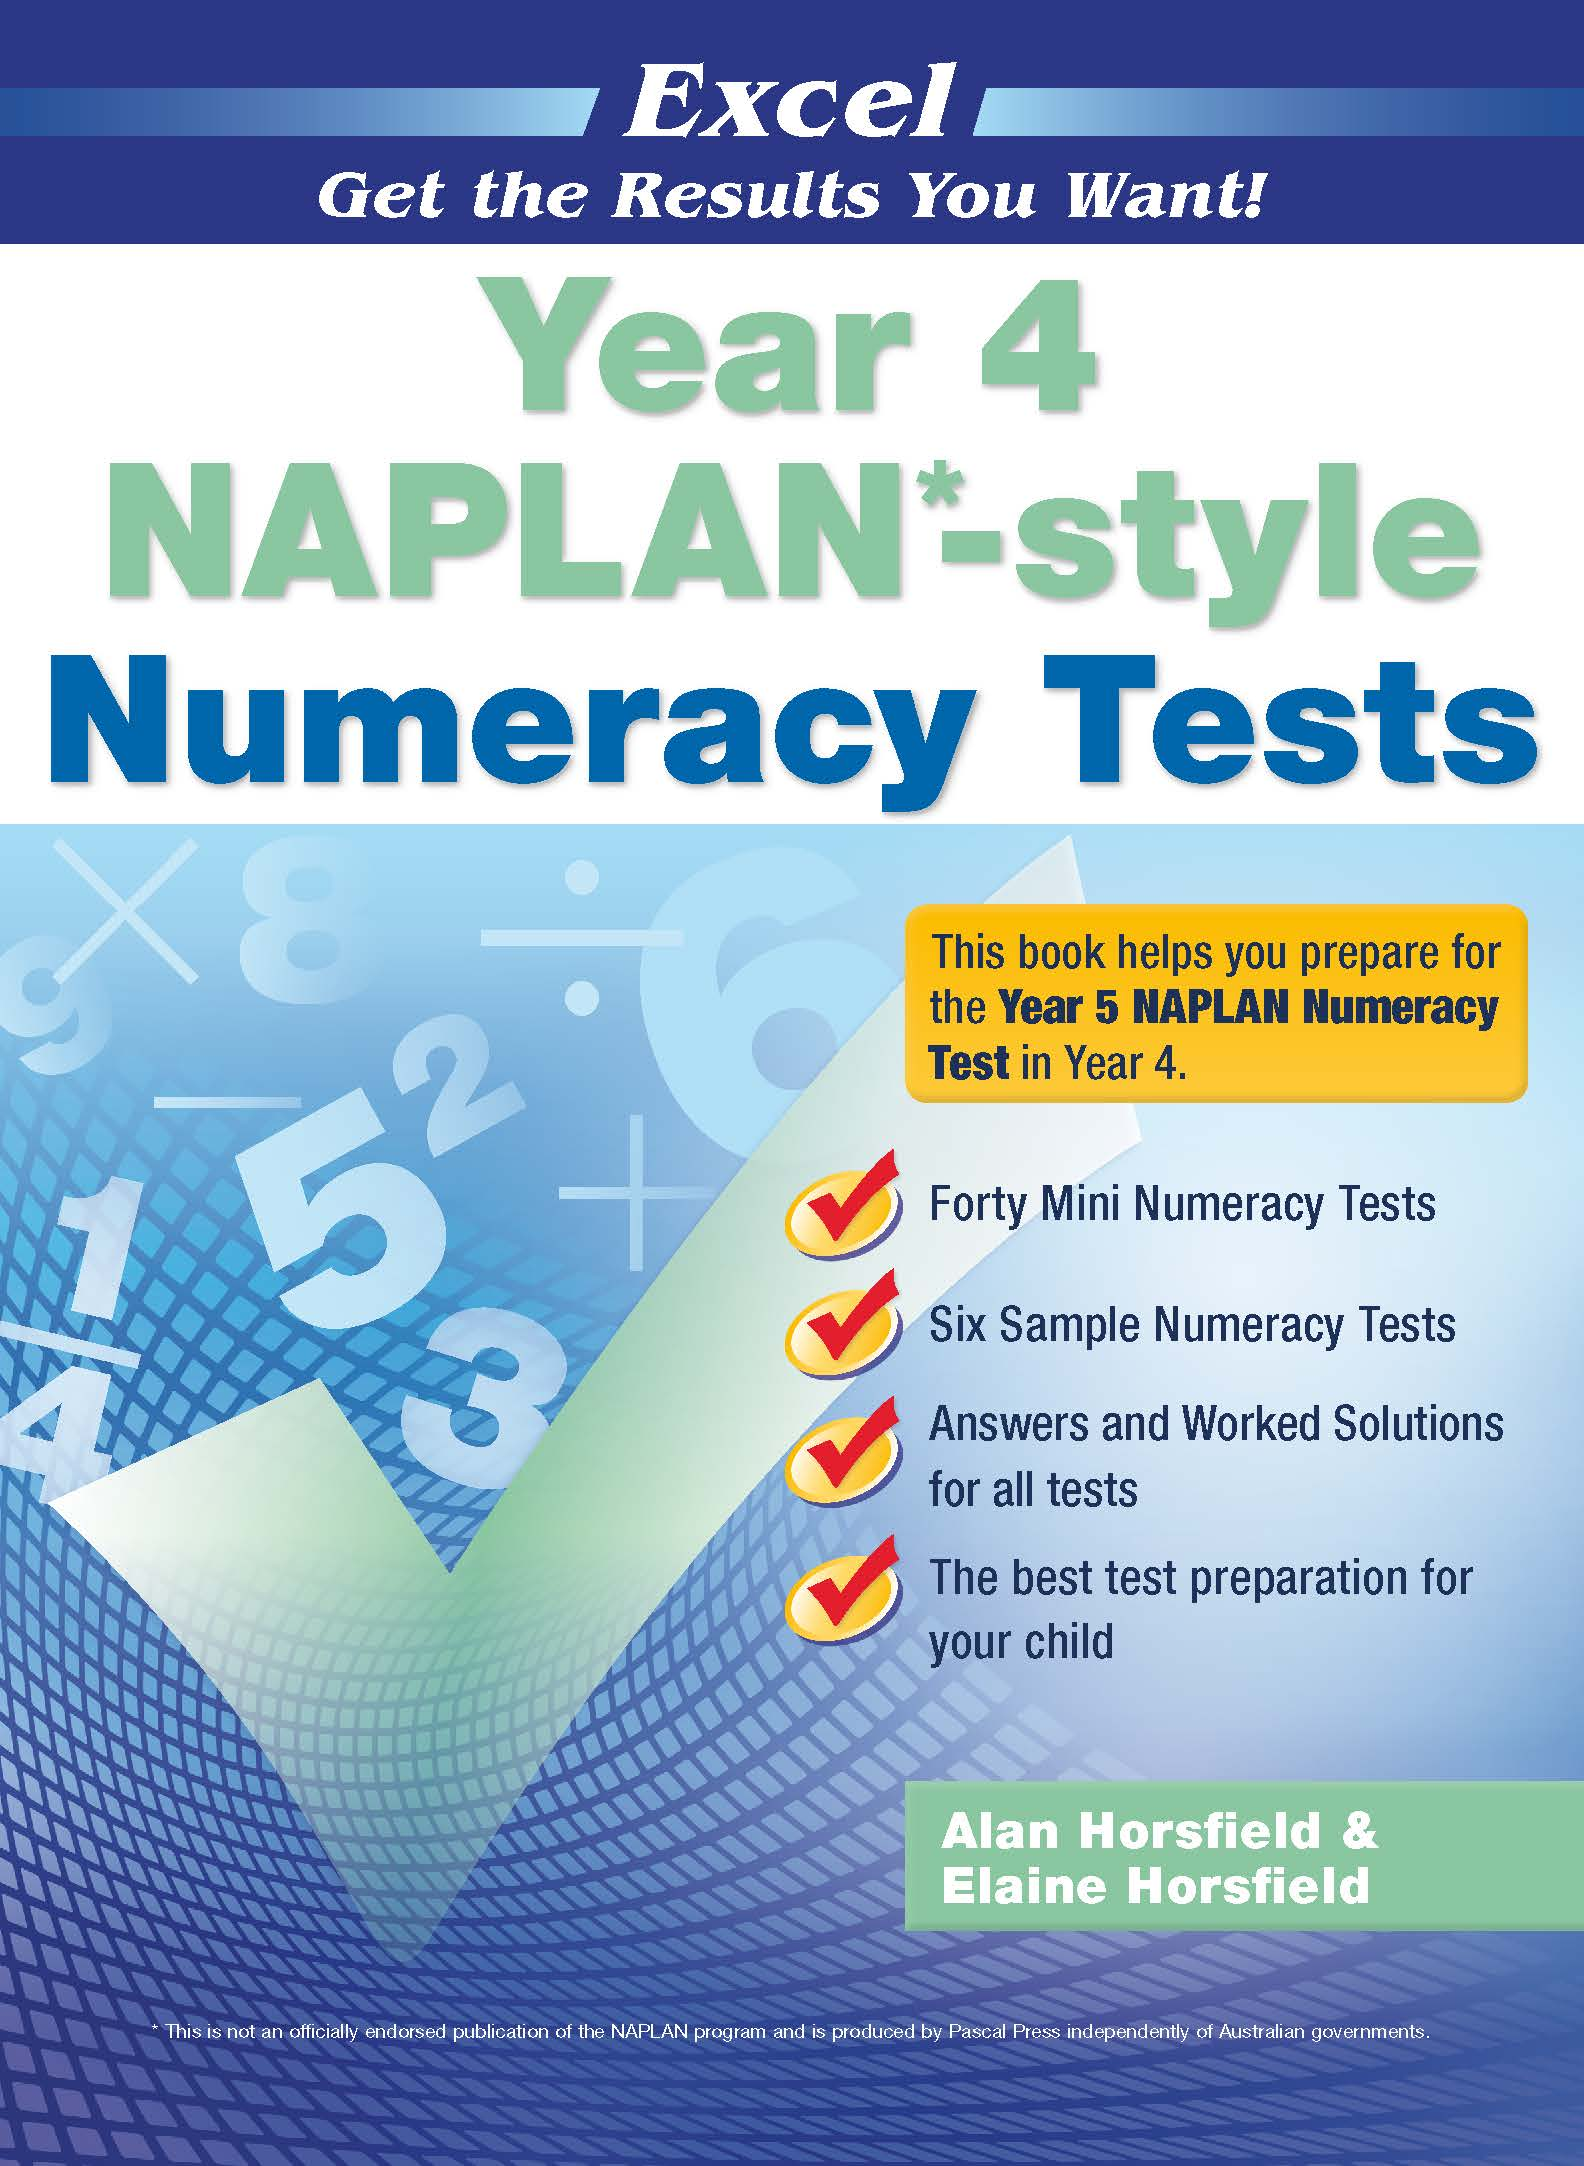 Excel NAPLAN*-style Numeracy Tests Year 4